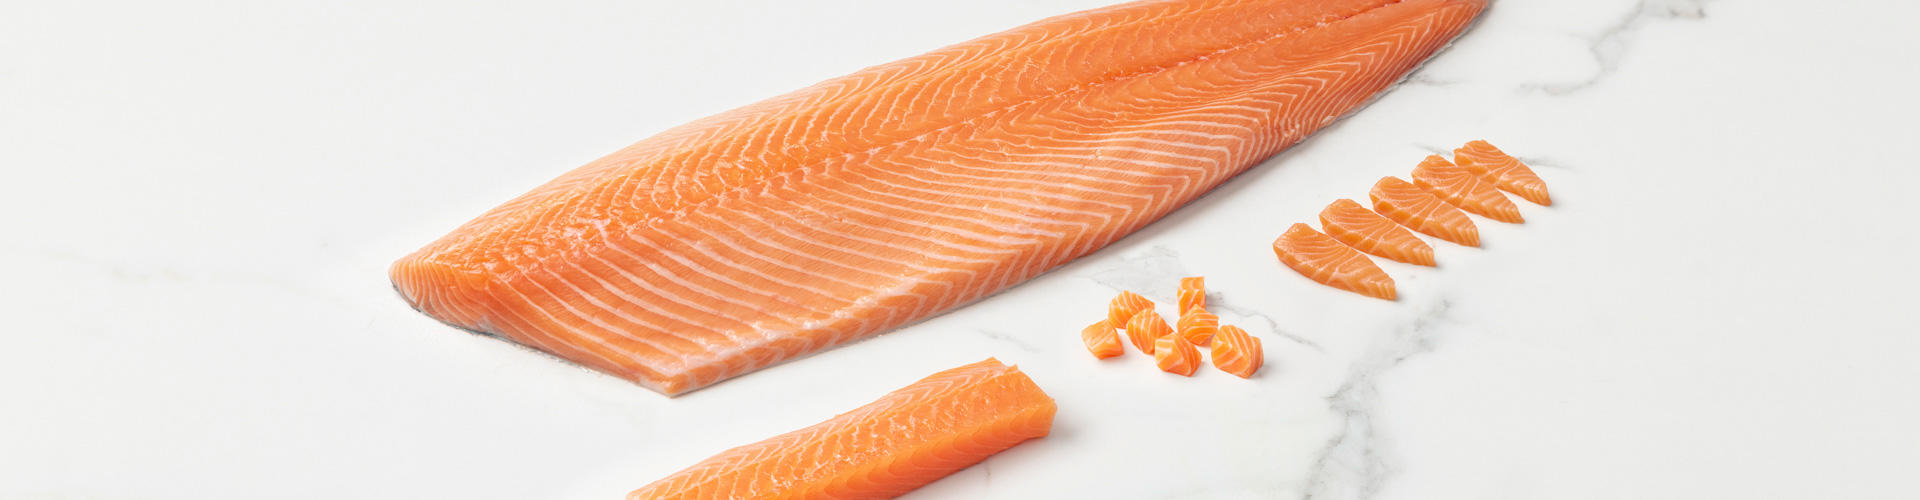 Seaborn launches pre-rigor fillets from its own production